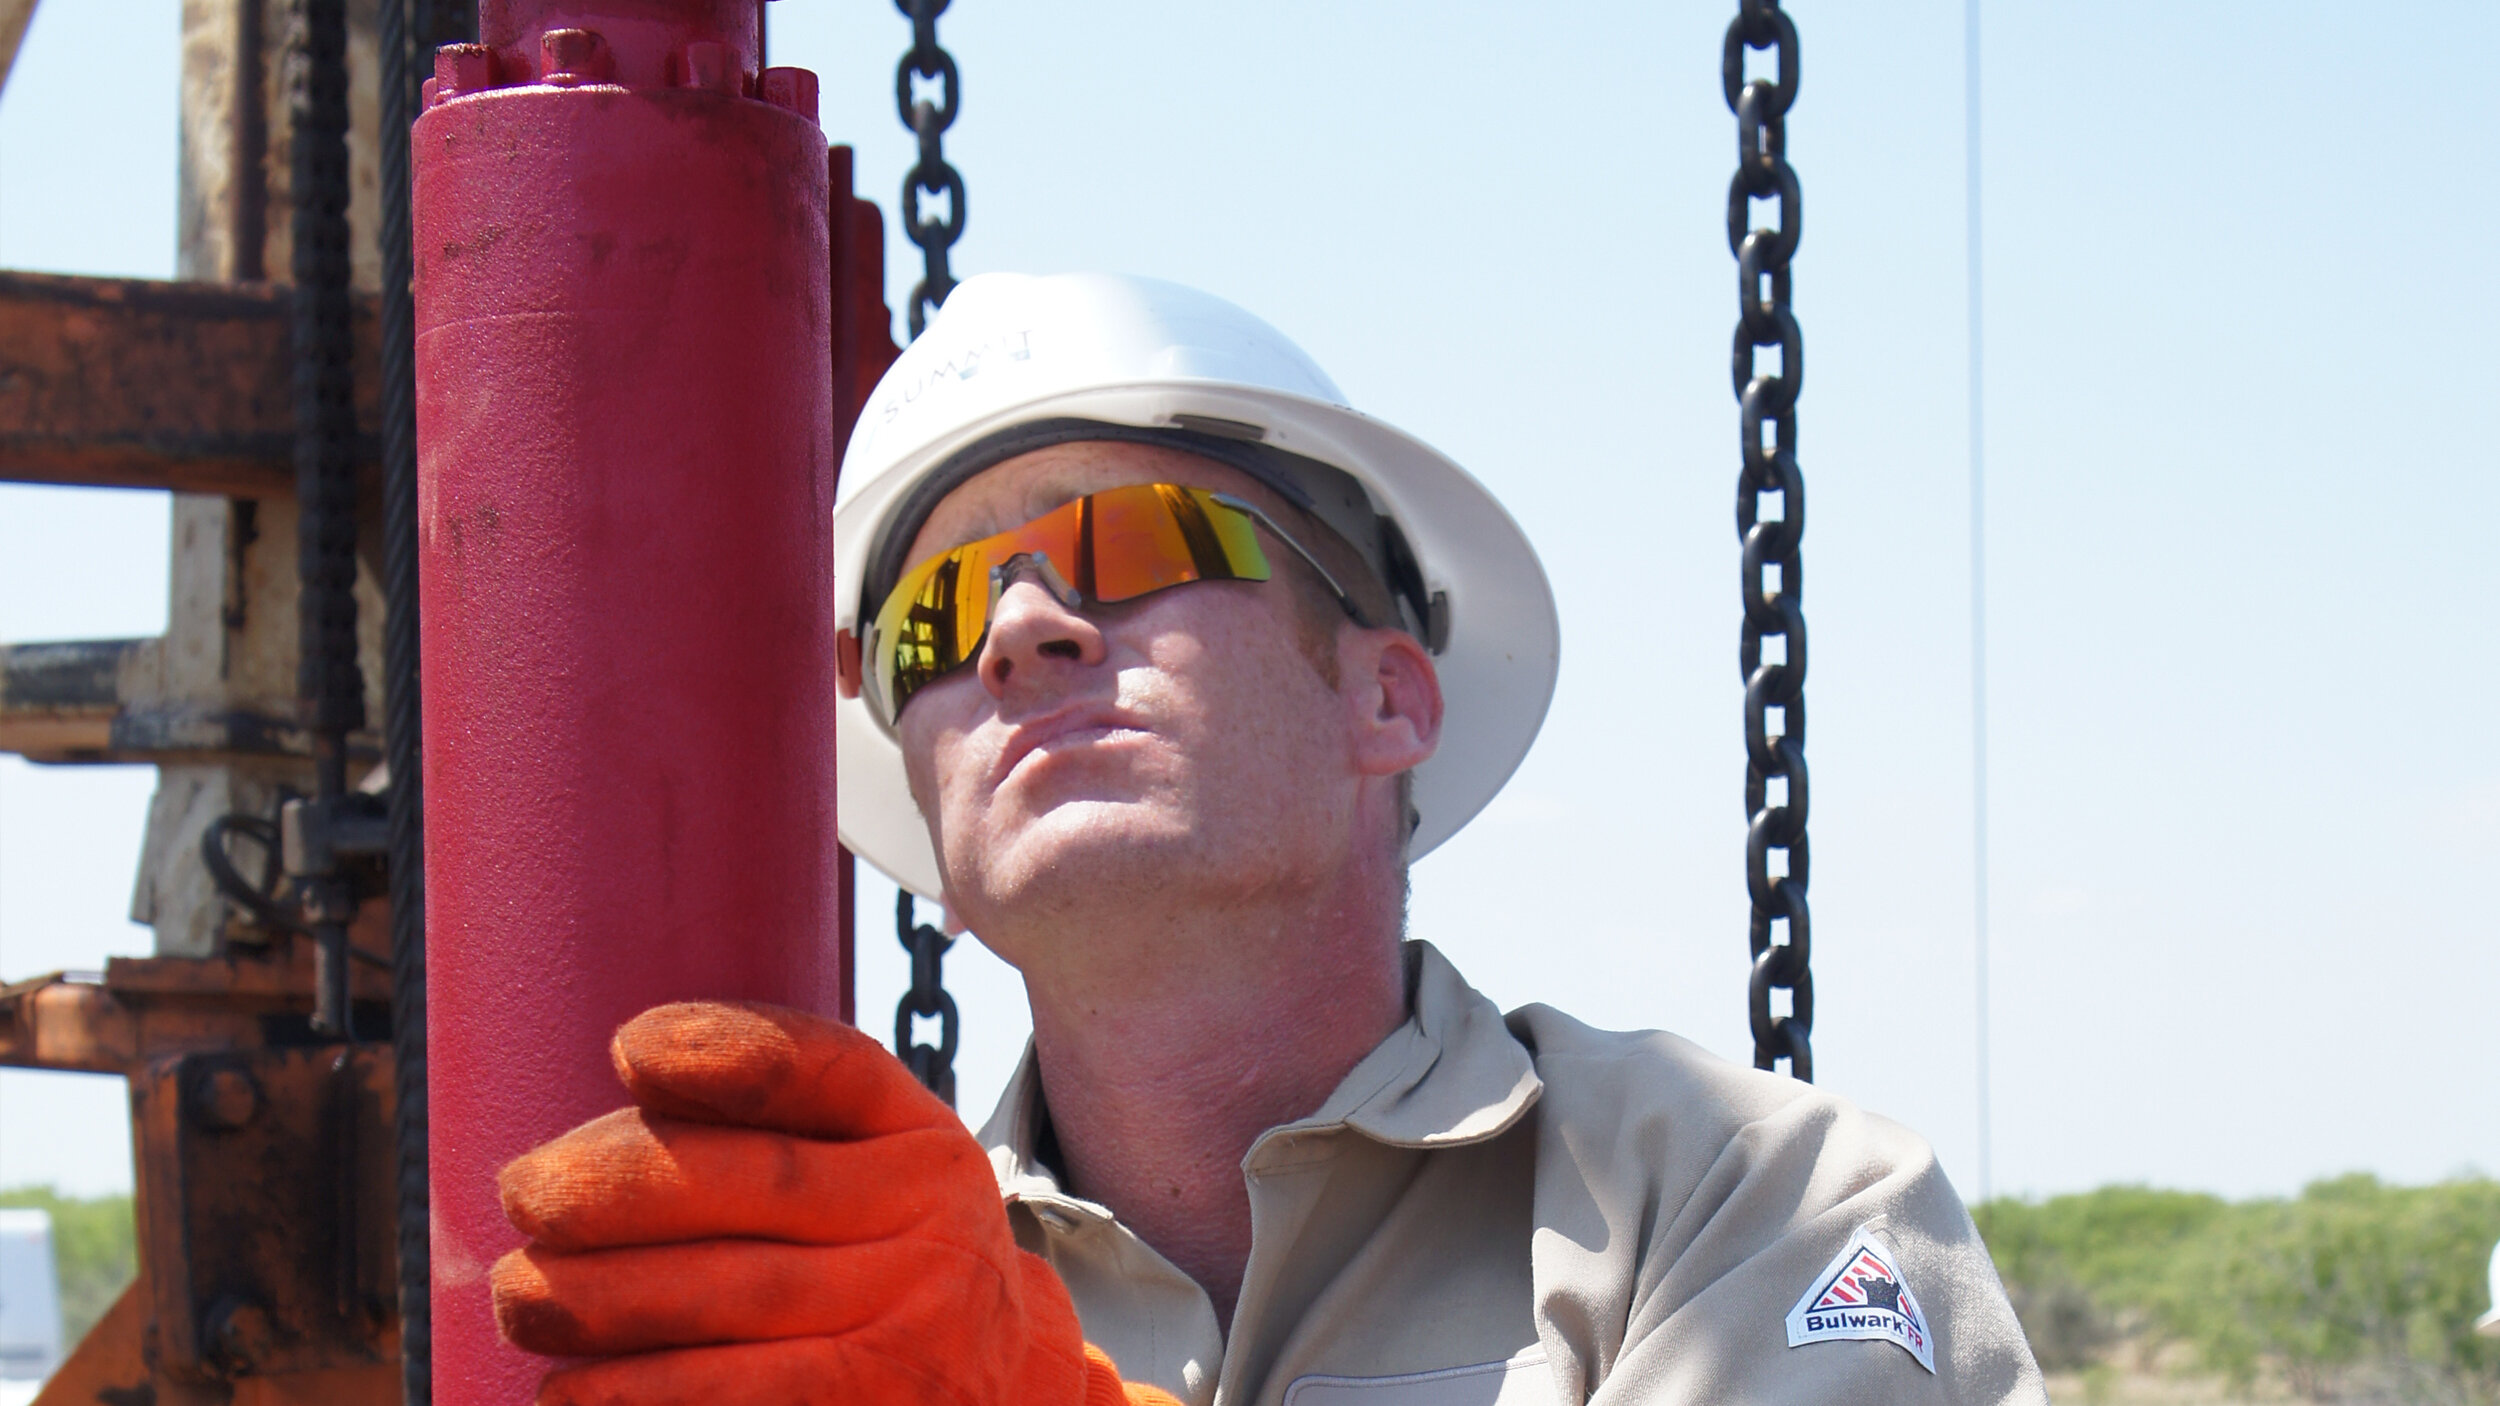 Reliable artificial lift pumping systems